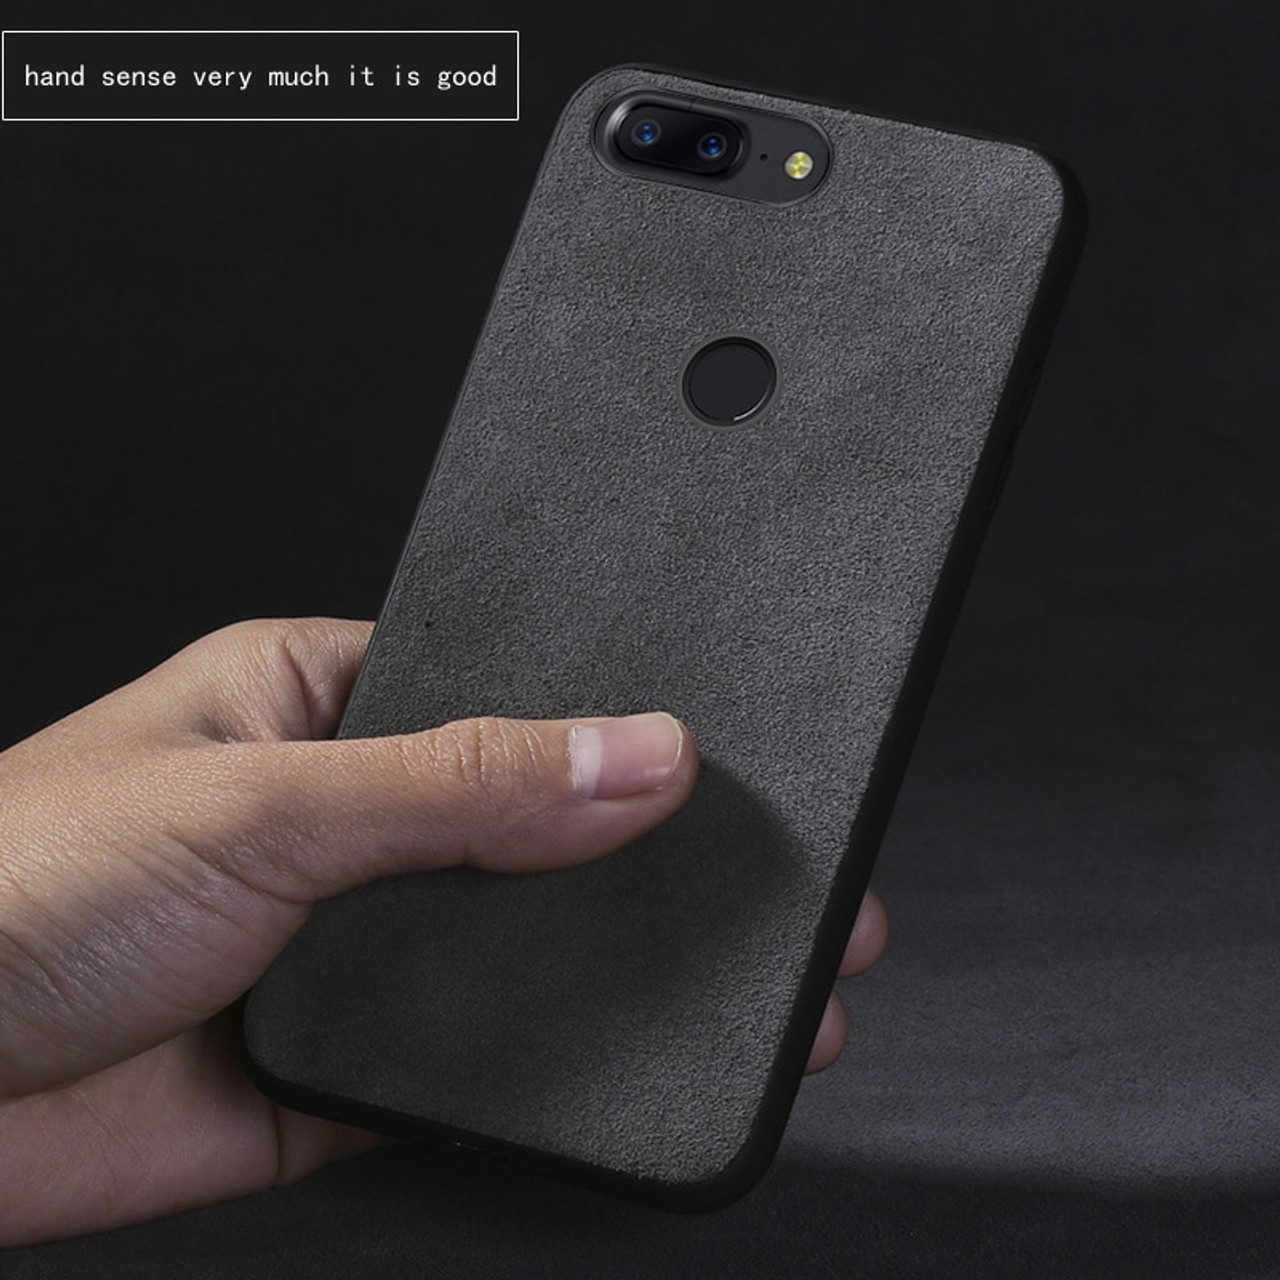 buy popular 7023b 0a16d Phone case For Oneplus 5T 5 6 cases Suede leather Ultra slim all inclusive  back cover Anti-fall Comfortable feel